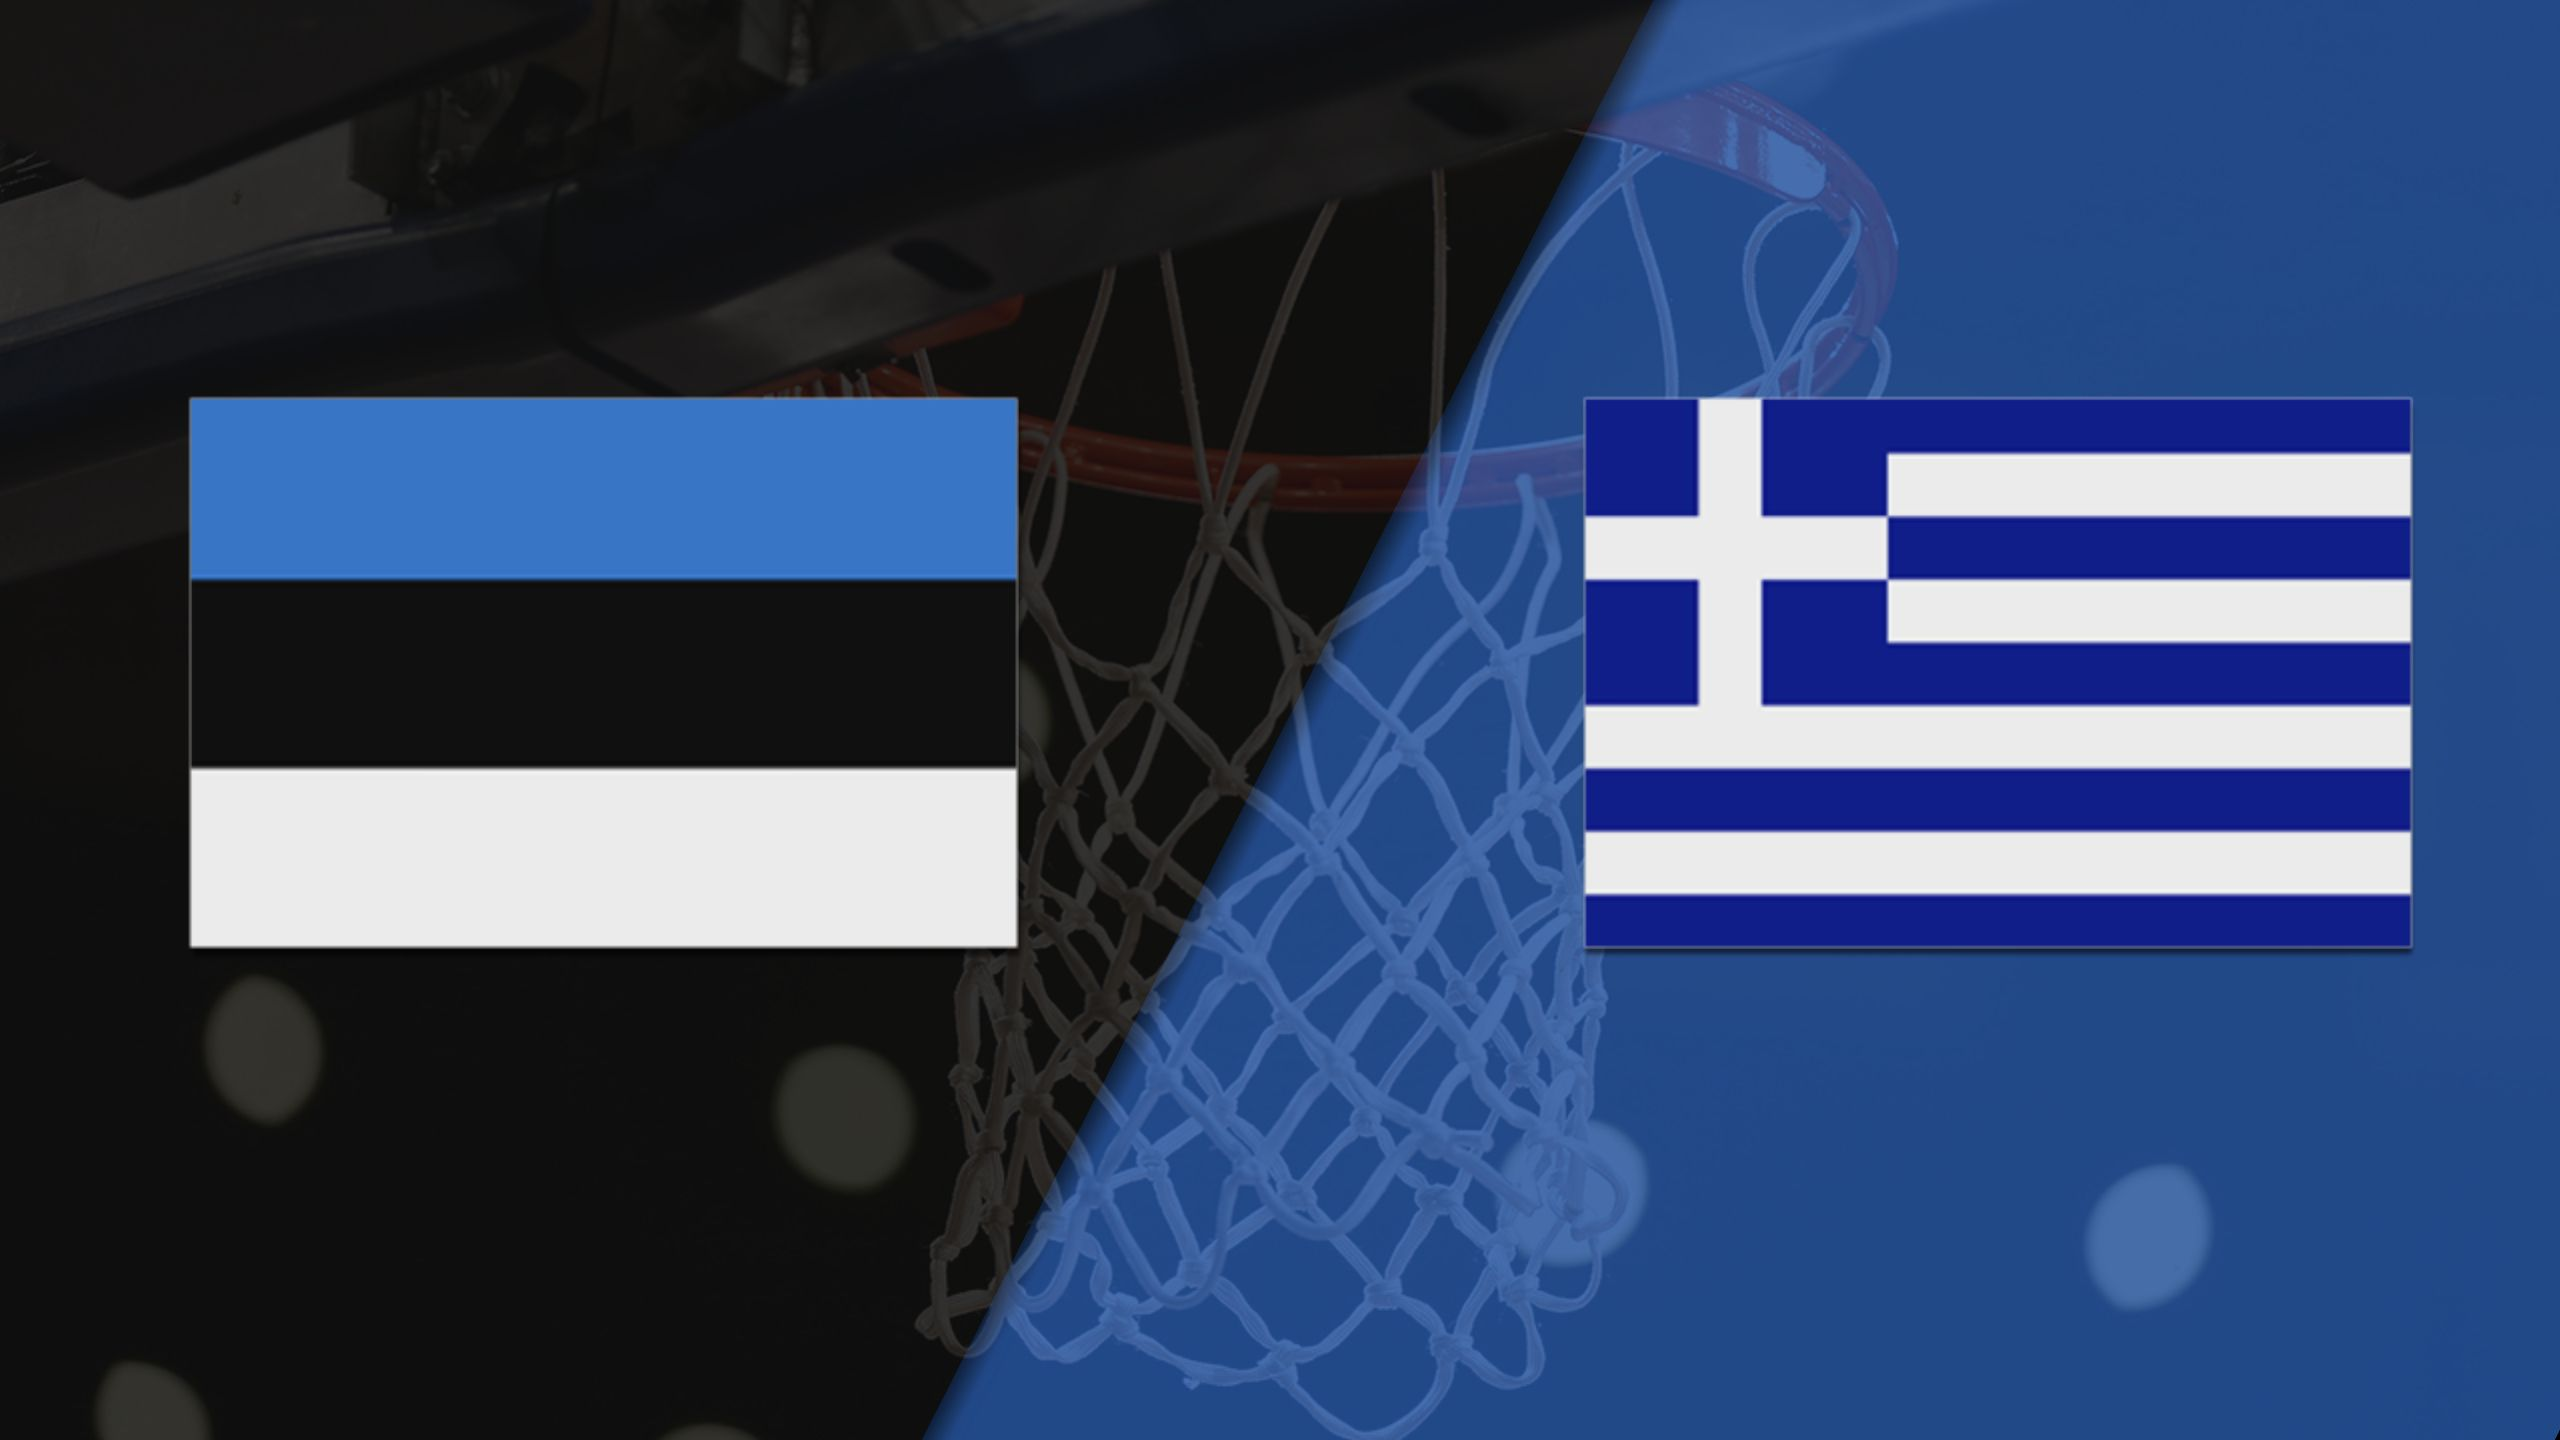 Estonia vs. Greece (FIBA World Cup 2019 Qualifier)